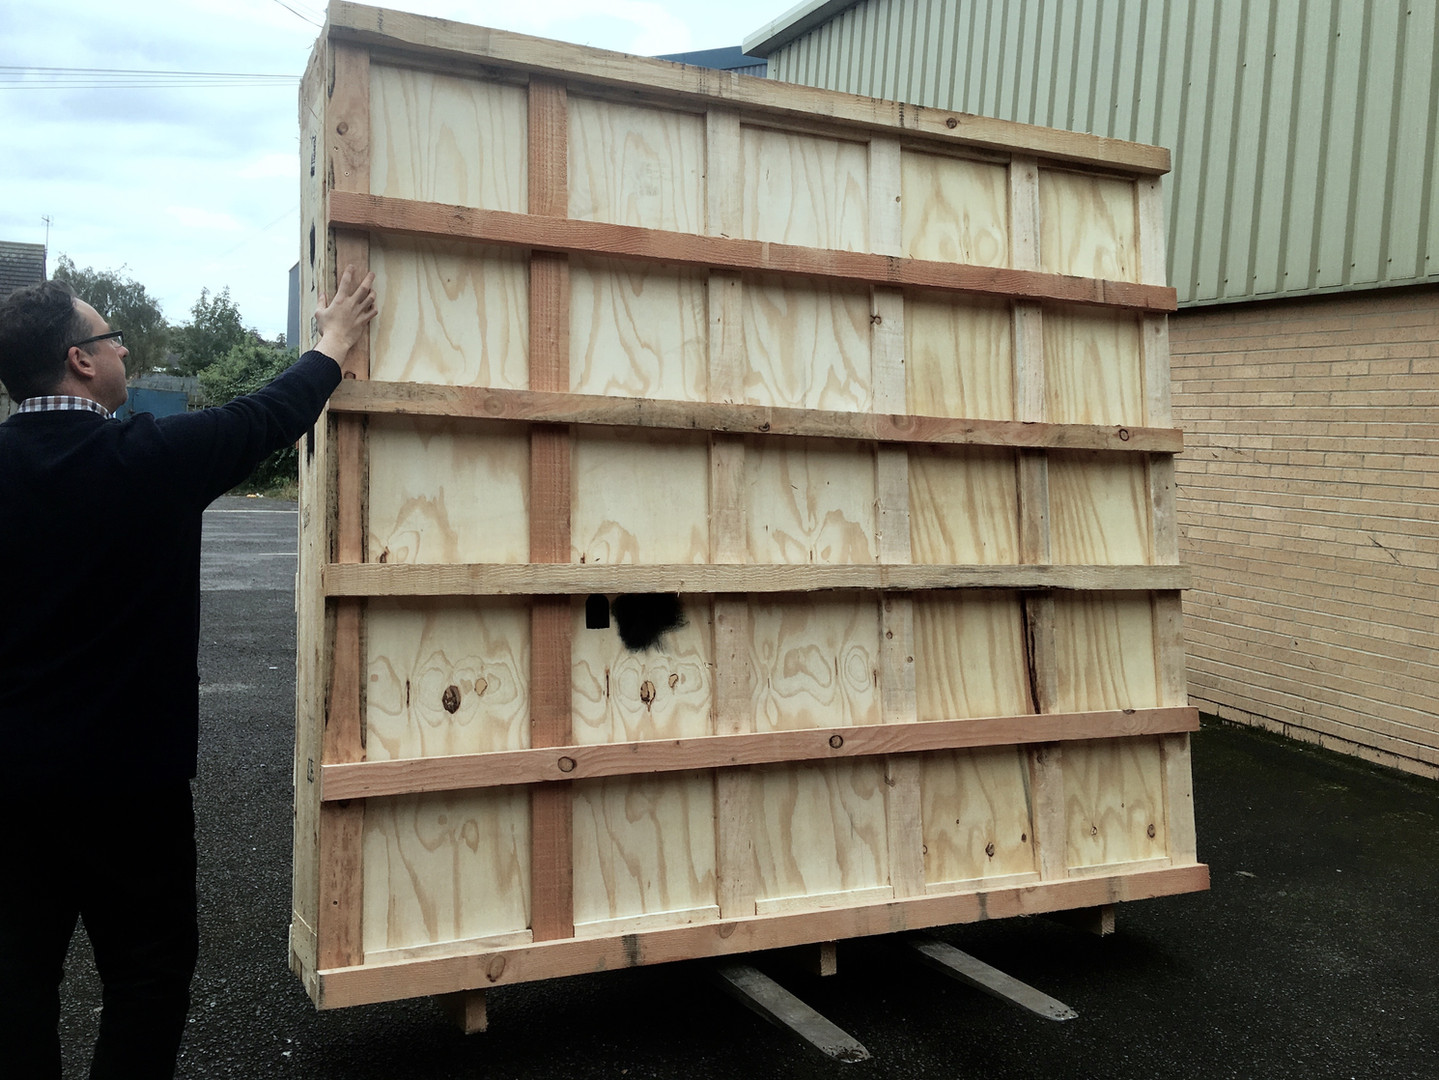 Loading crate from York for export